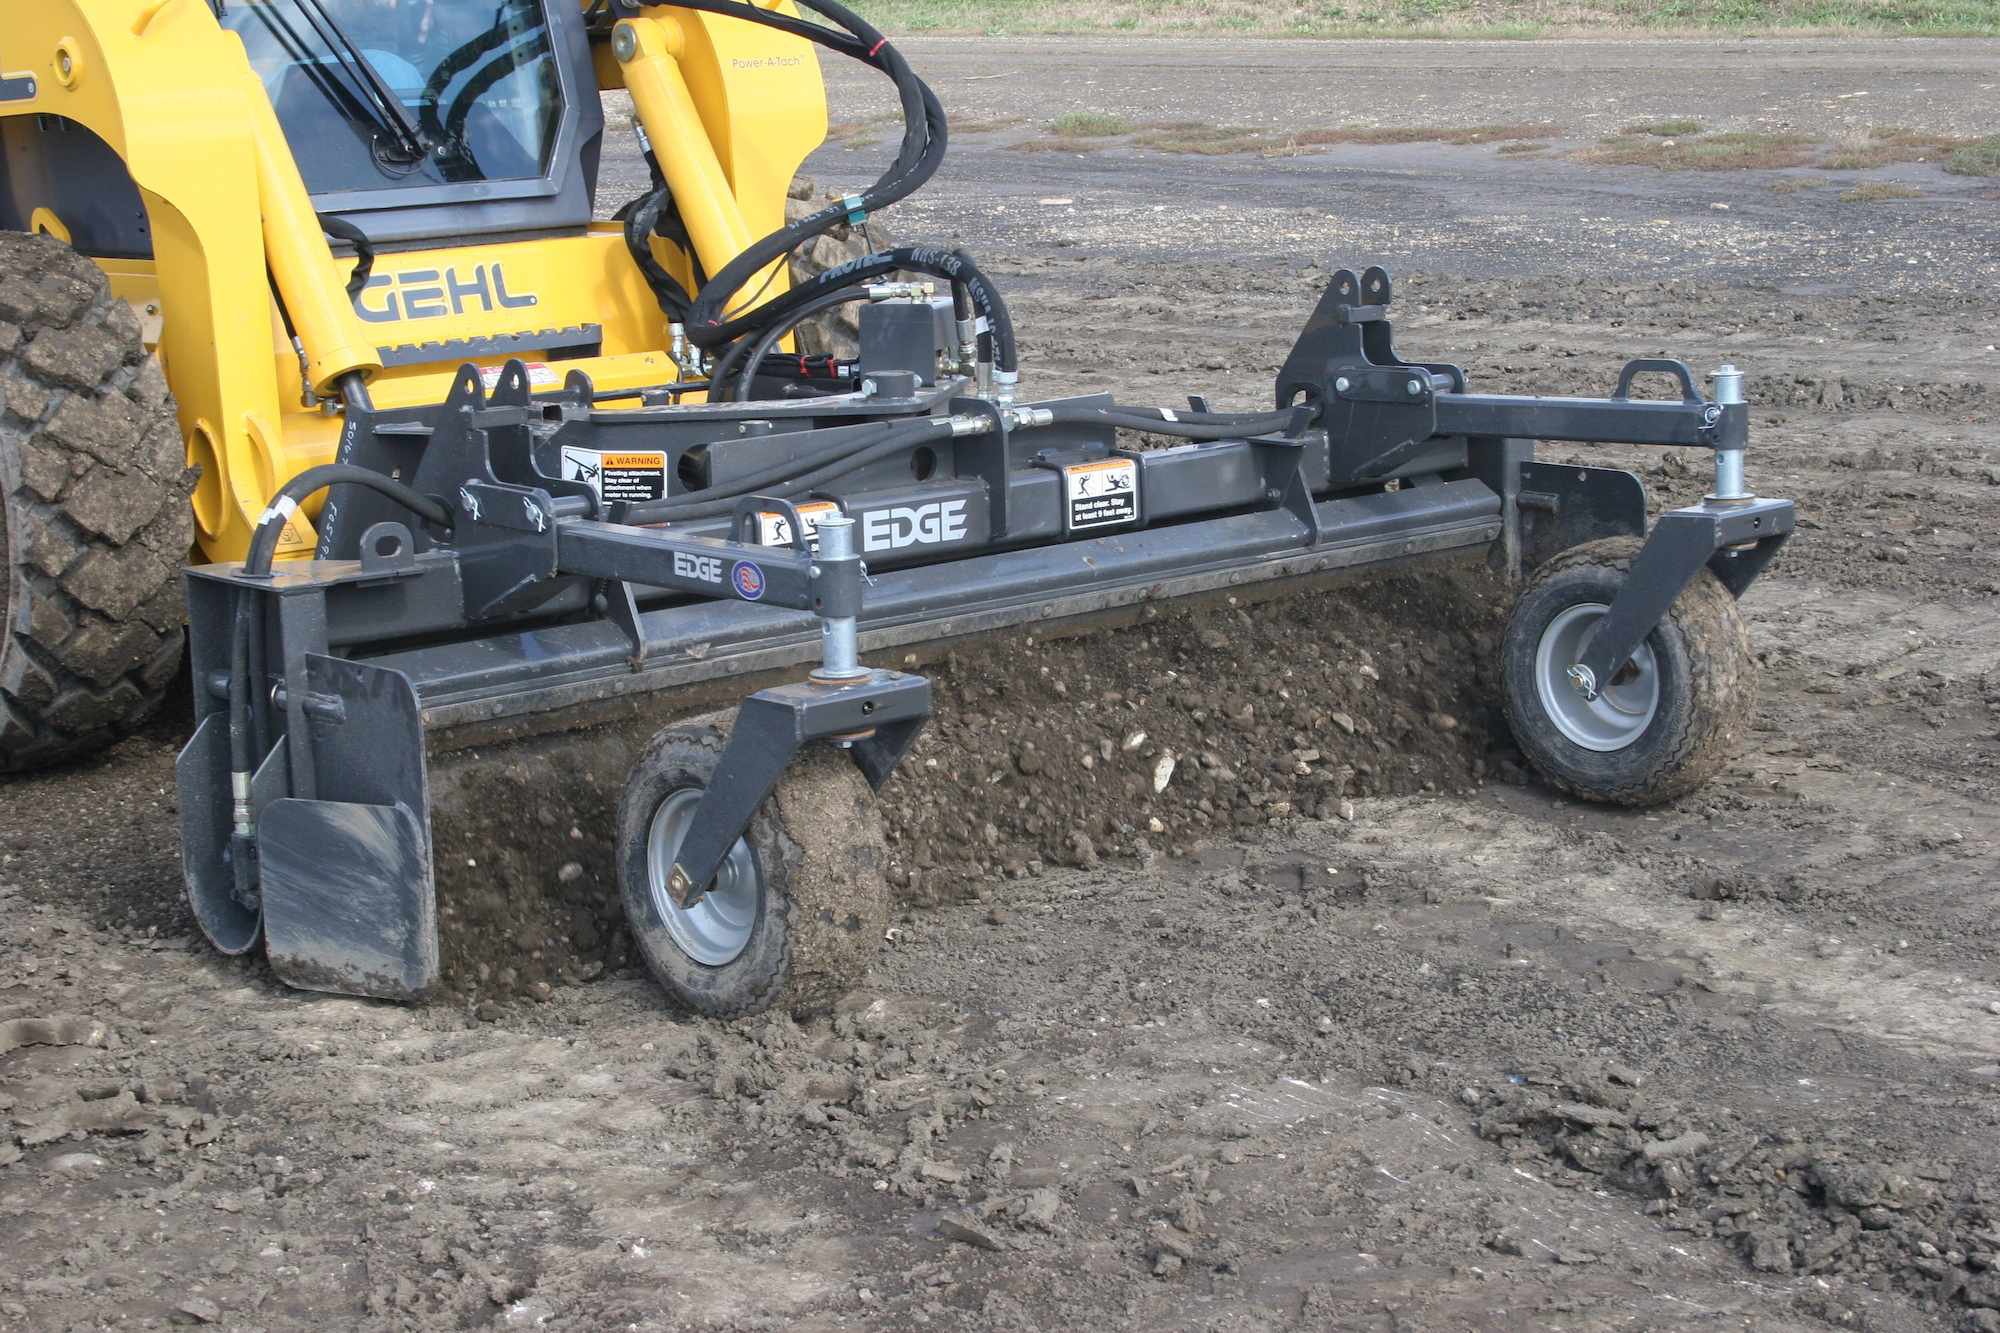 Landscaping Roundup: 18 attachments for raking, leveling